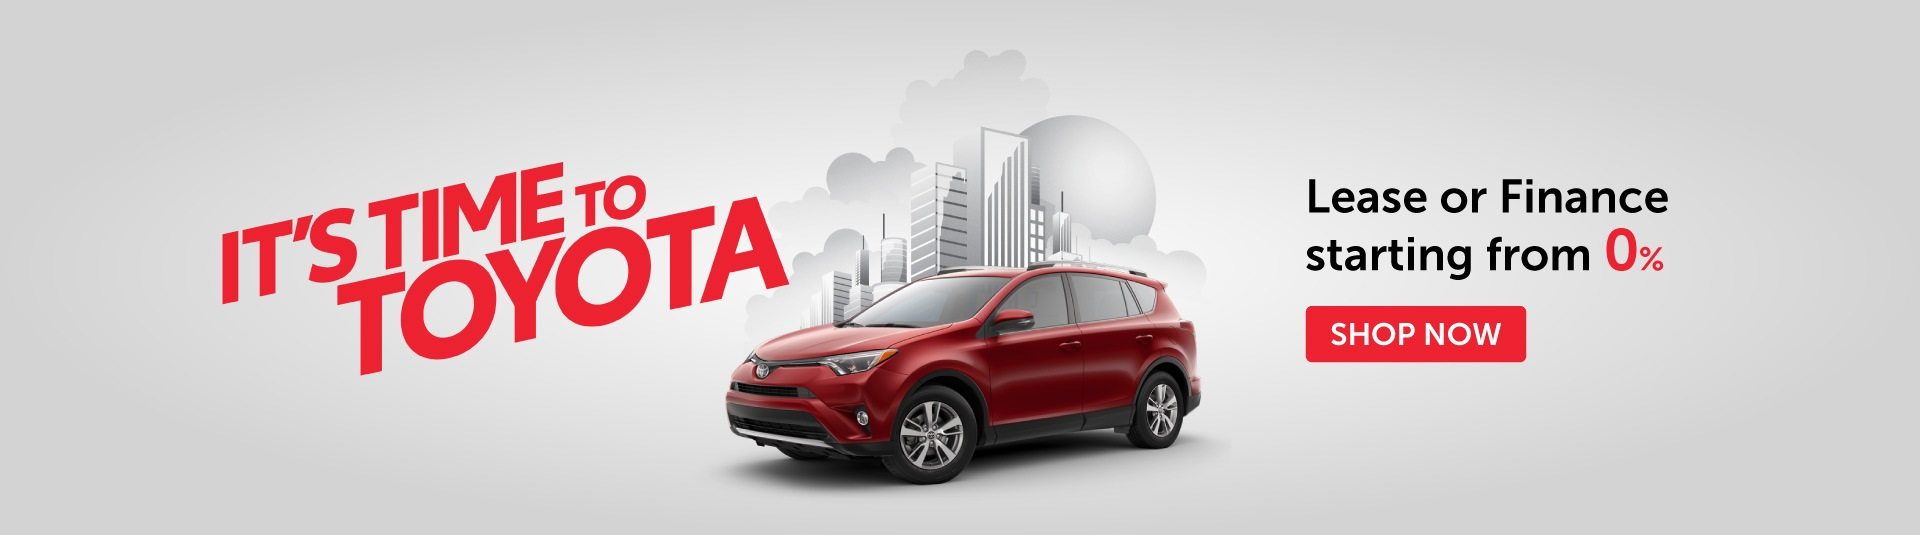 Georgetown Toyota - It's Time To Toyota Event